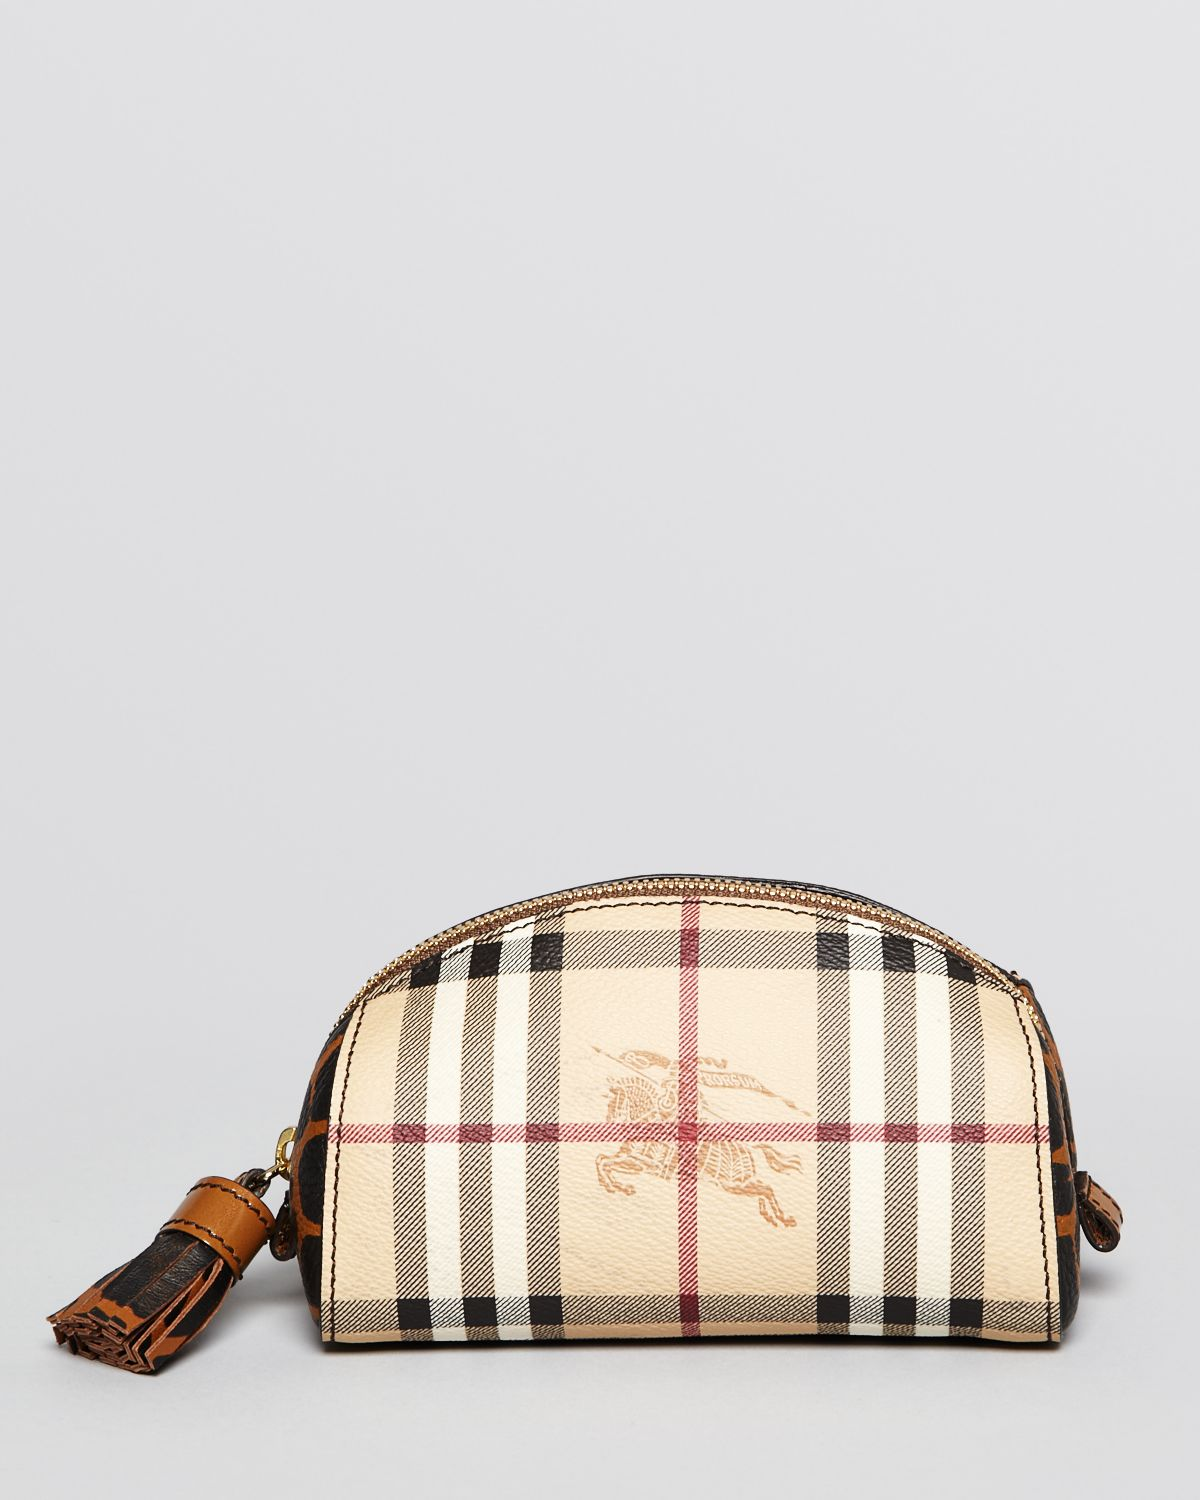 Lyst - Burberry Cosmetic Pouch Evelyn Small Check in Natural ad98279a23d3d